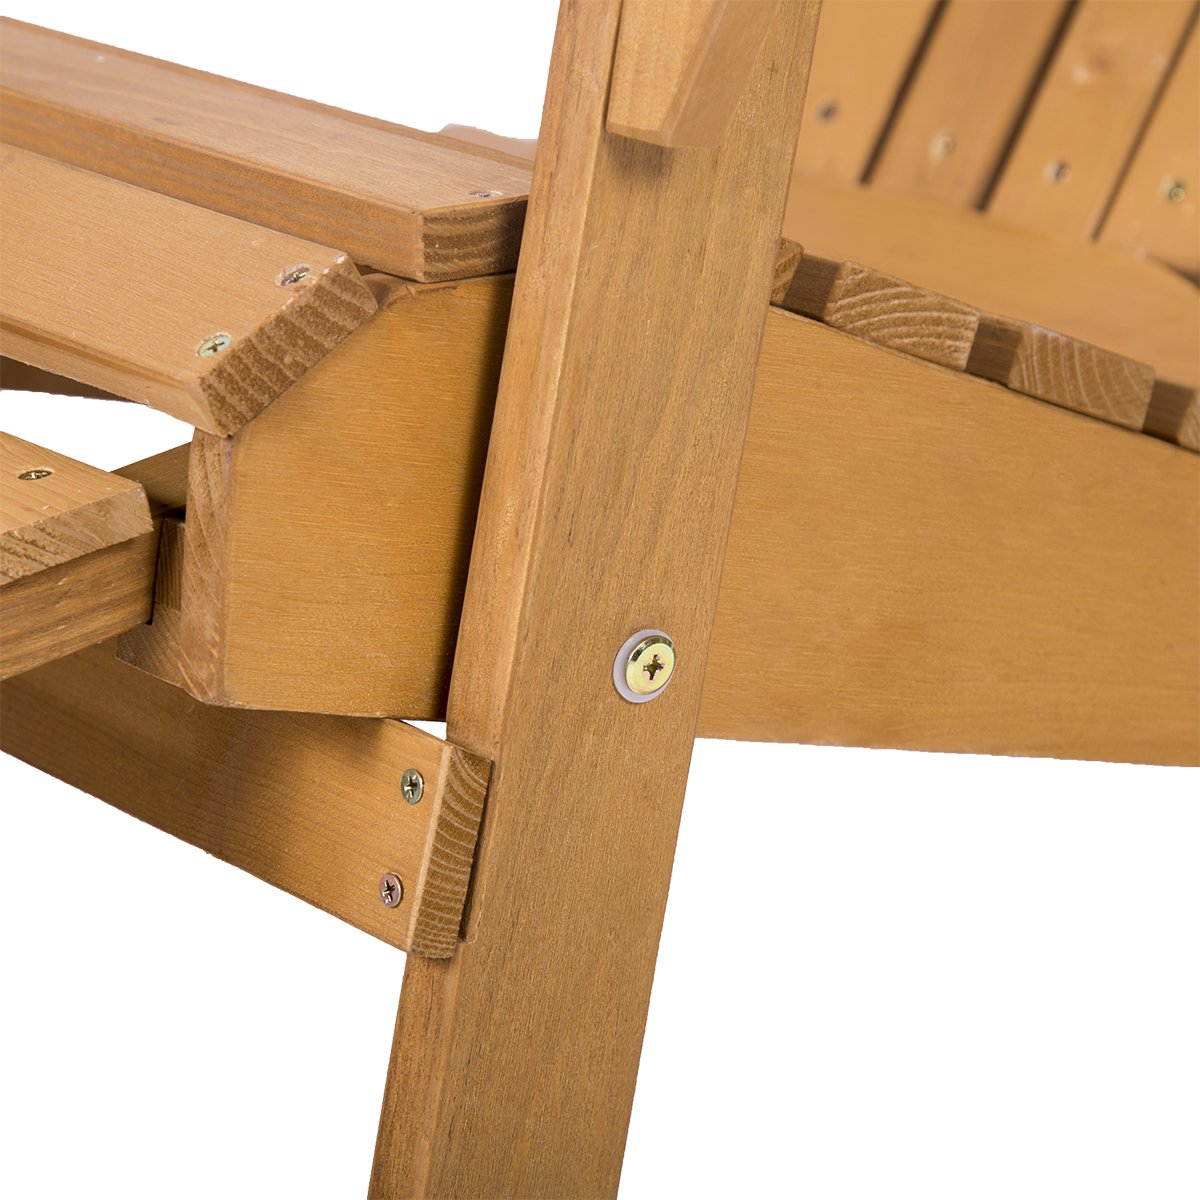 FDW Outdoor Wood Adirondack Chair Foldable w/Pull Out Ottoman Patio Furniture by FDW (Image #5)